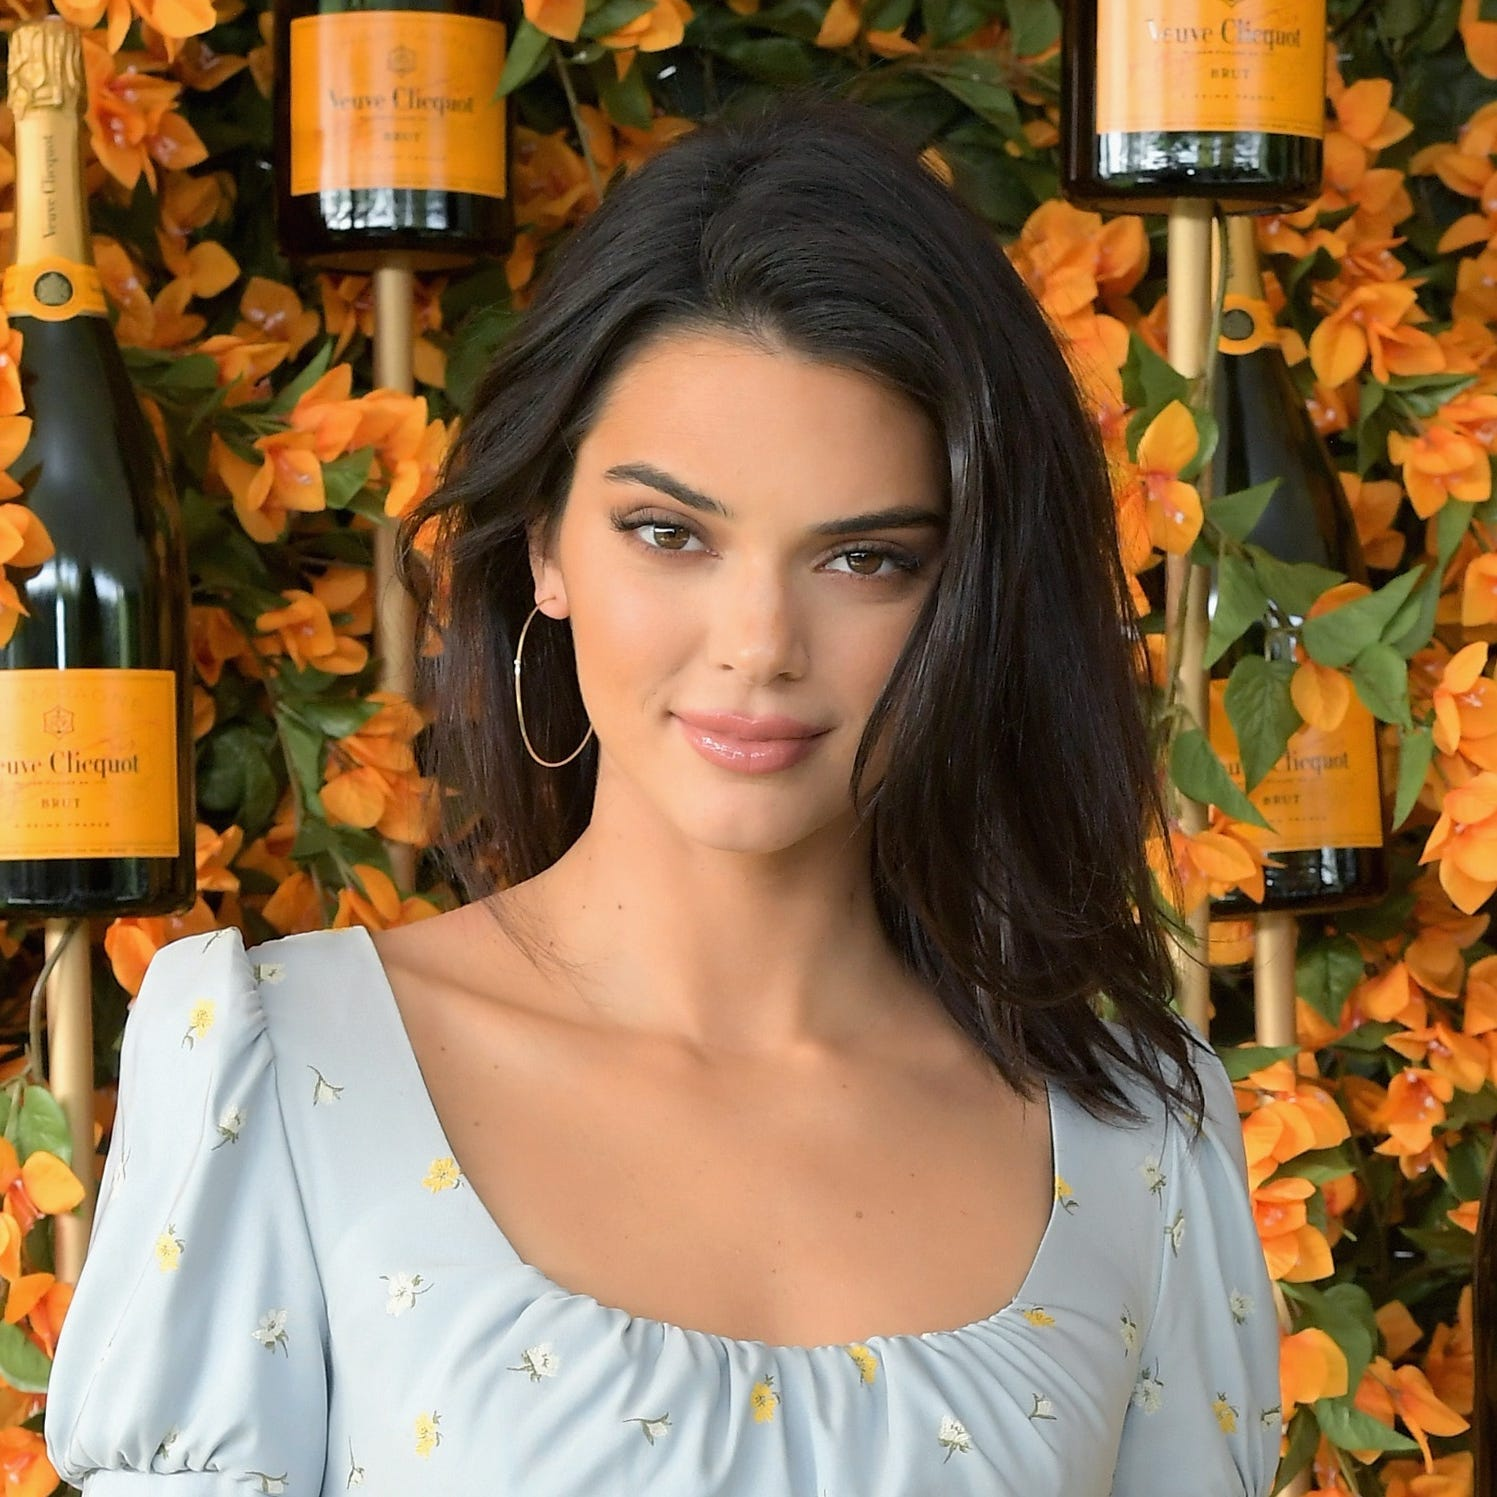 Friday is last chance to see Desert X installation, and it looks like Kendall Jenner stopped by